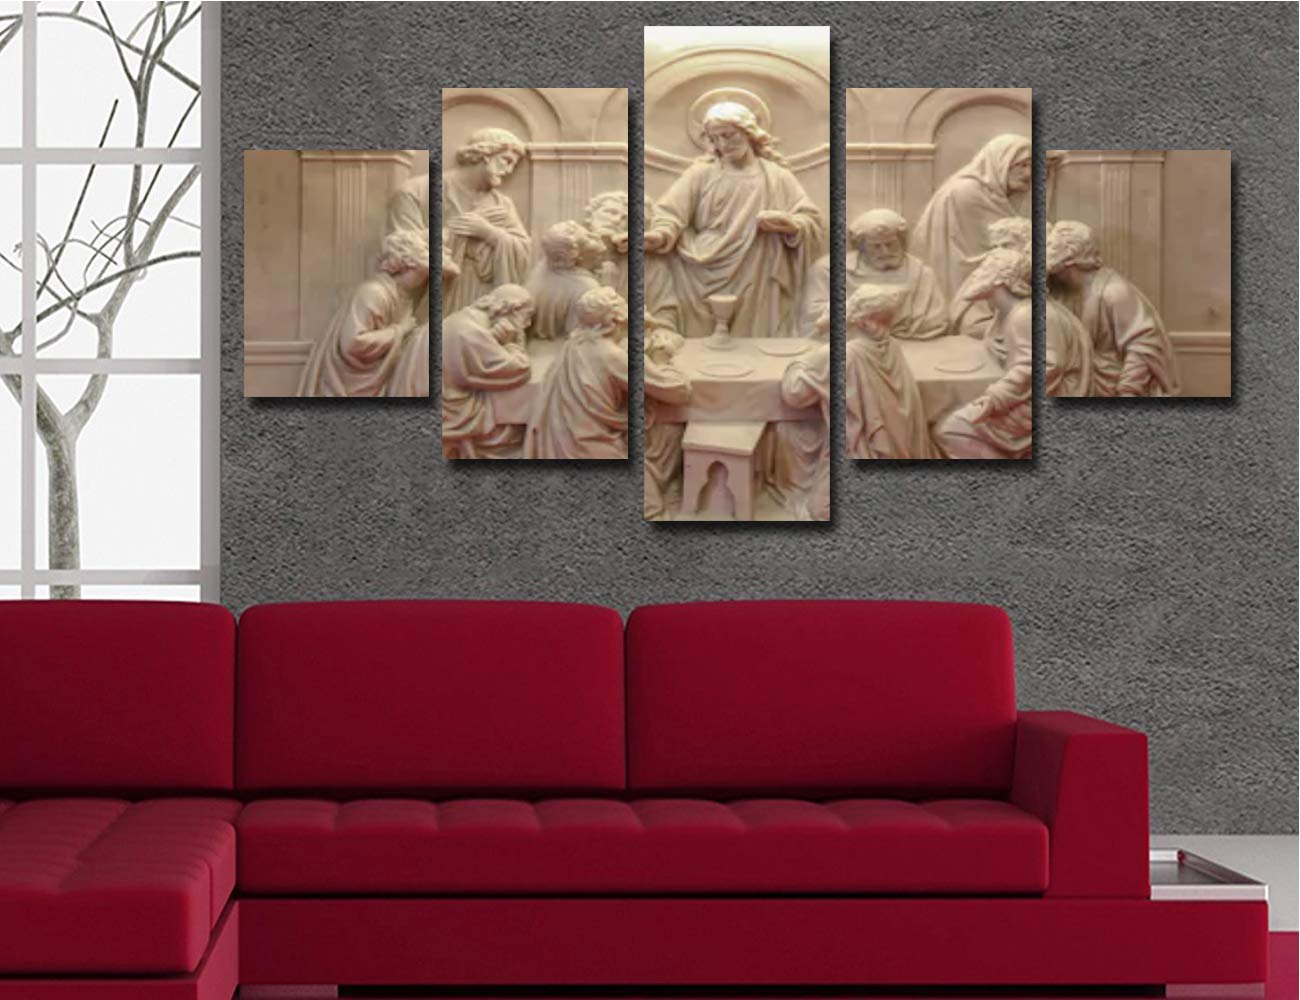 Jesus Last Supper Wall Decor for Living Room Pictures 5 Piece Canvas Prints Wall Art Christ Ultima Cena Paintings Bedroom Decoration for Home Poster Frame Christian Sculpture 60 Wx32 H